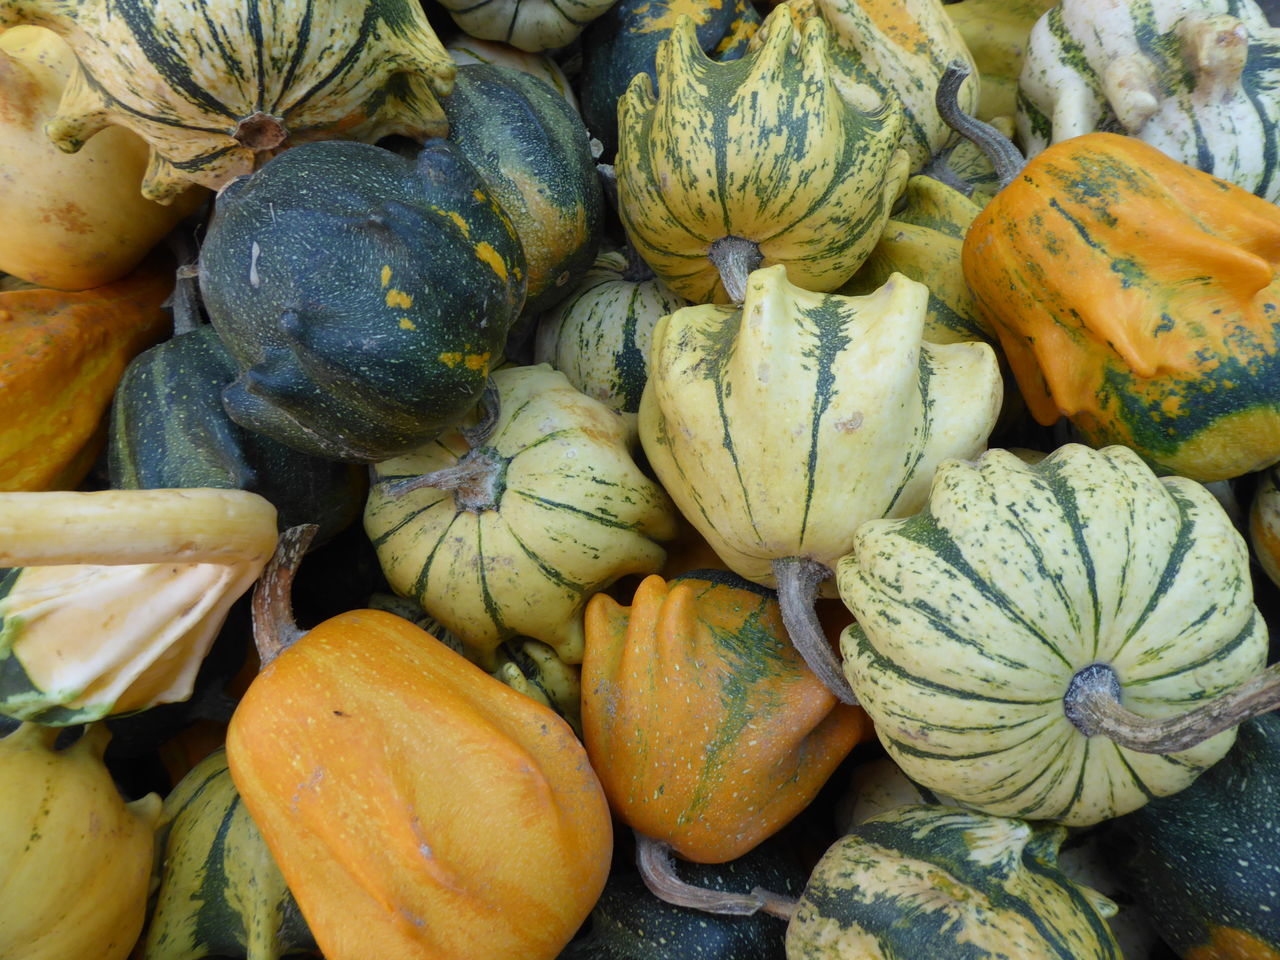 wellbeing, healthy eating, food and drink, food, pumpkin, freshness, full frame, market, backgrounds, retail, large group of objects, no people, abundance, day, market stall, for sale, squash - vegetable, vegetable, high angle view, still life, outdoors